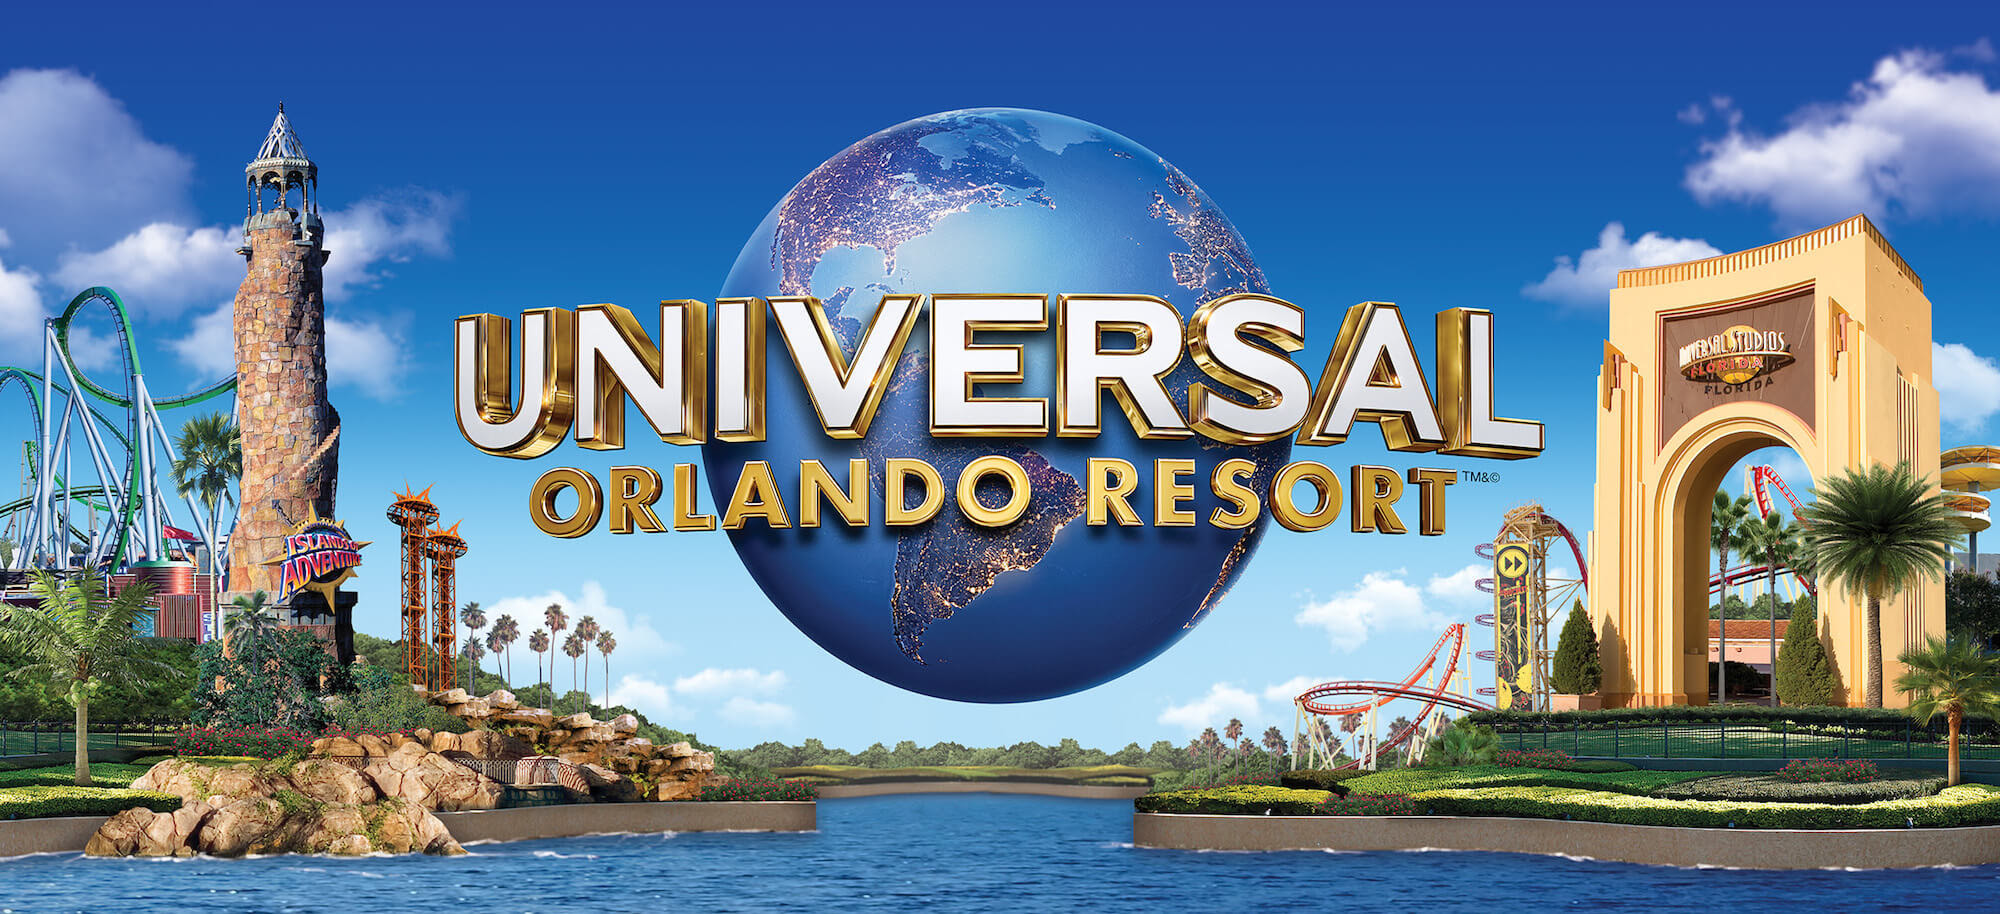 Fourth Universal Studios Park Reportedly in the Works